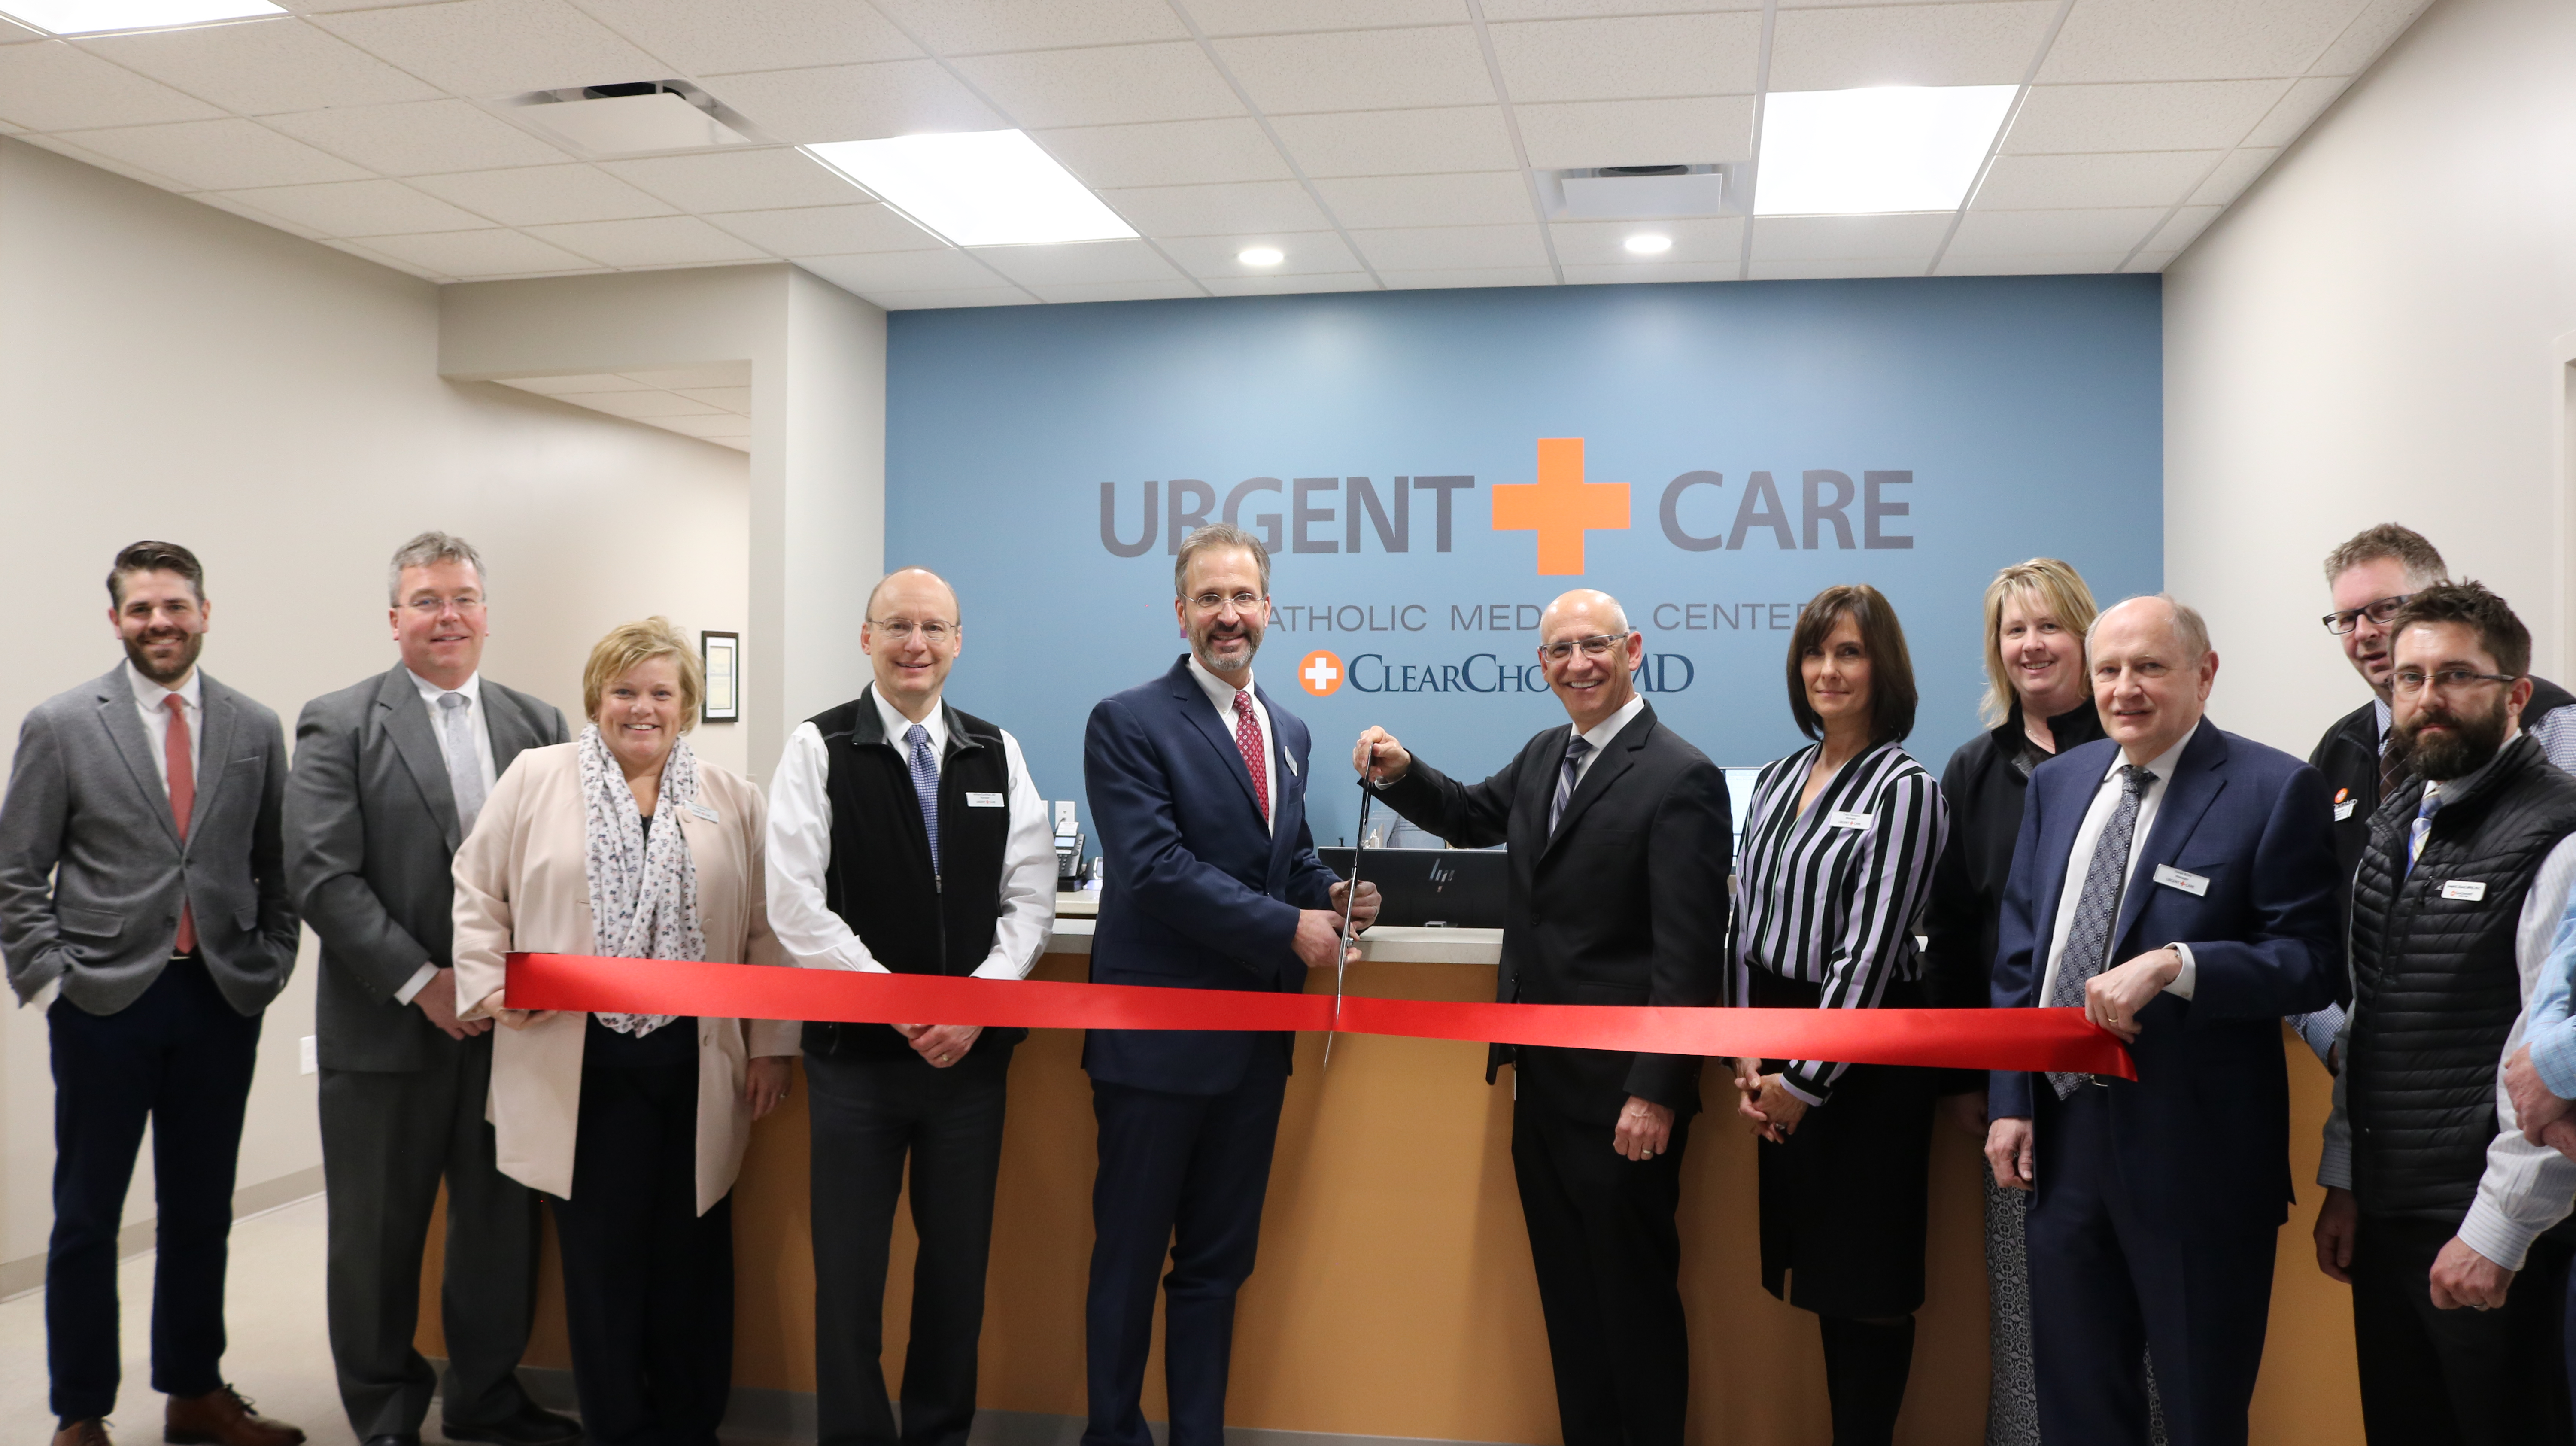 CMC Partners with ClearChoiceMD Urgent Care